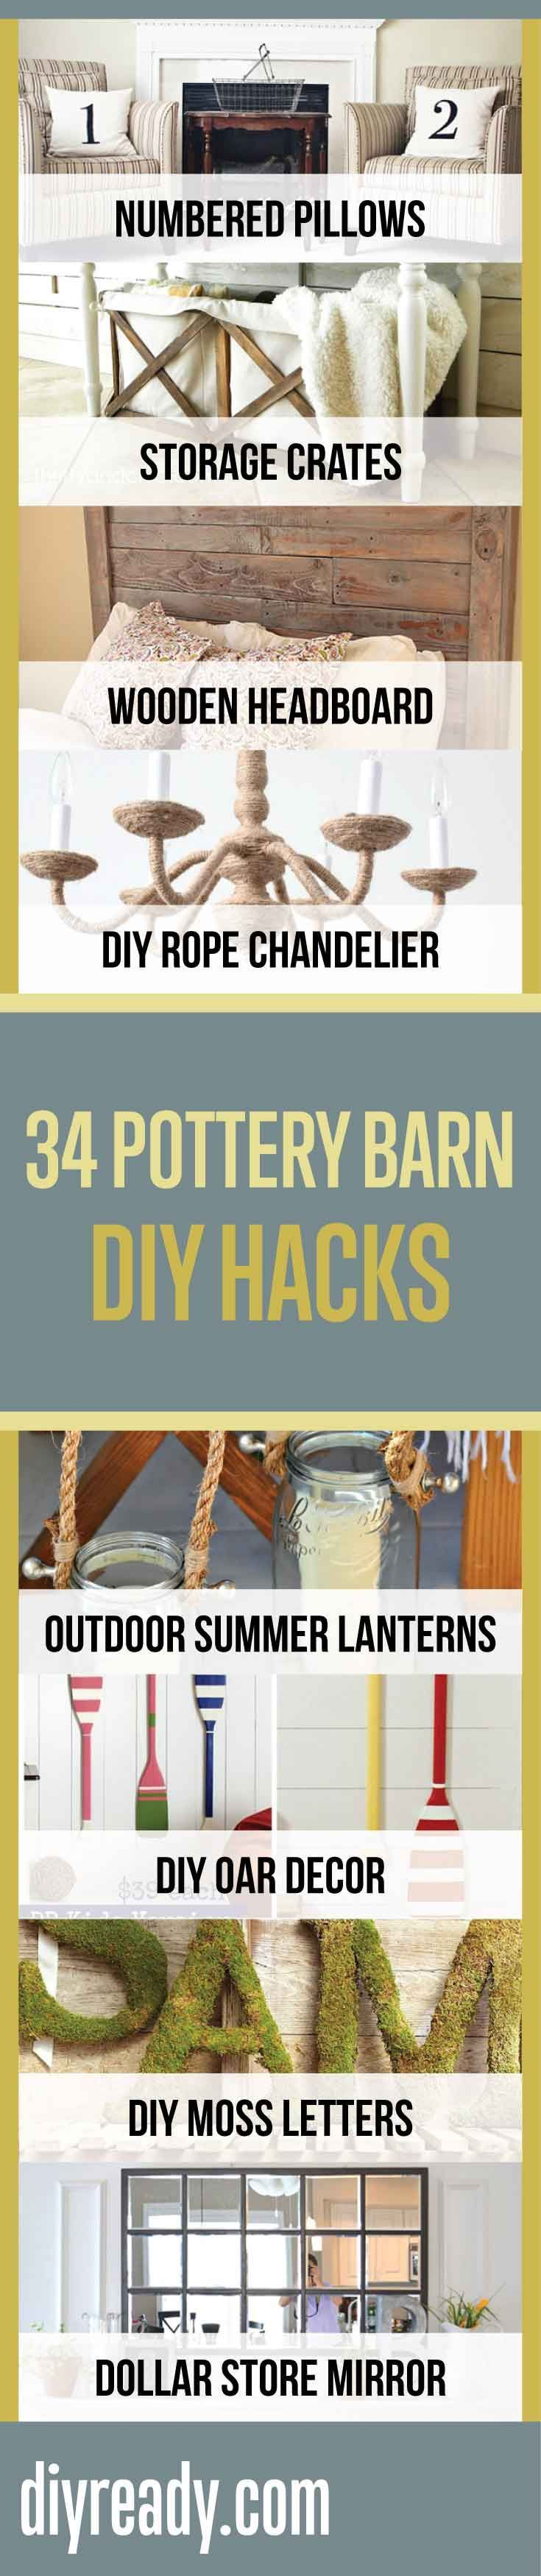 34 Pottery Barn Hacks | Awesome Do It Yourself Furniture Ideas For Home Decor Projects By DIY Ready. http://diyready.com/diy-projects-pottery-barn-hacks/